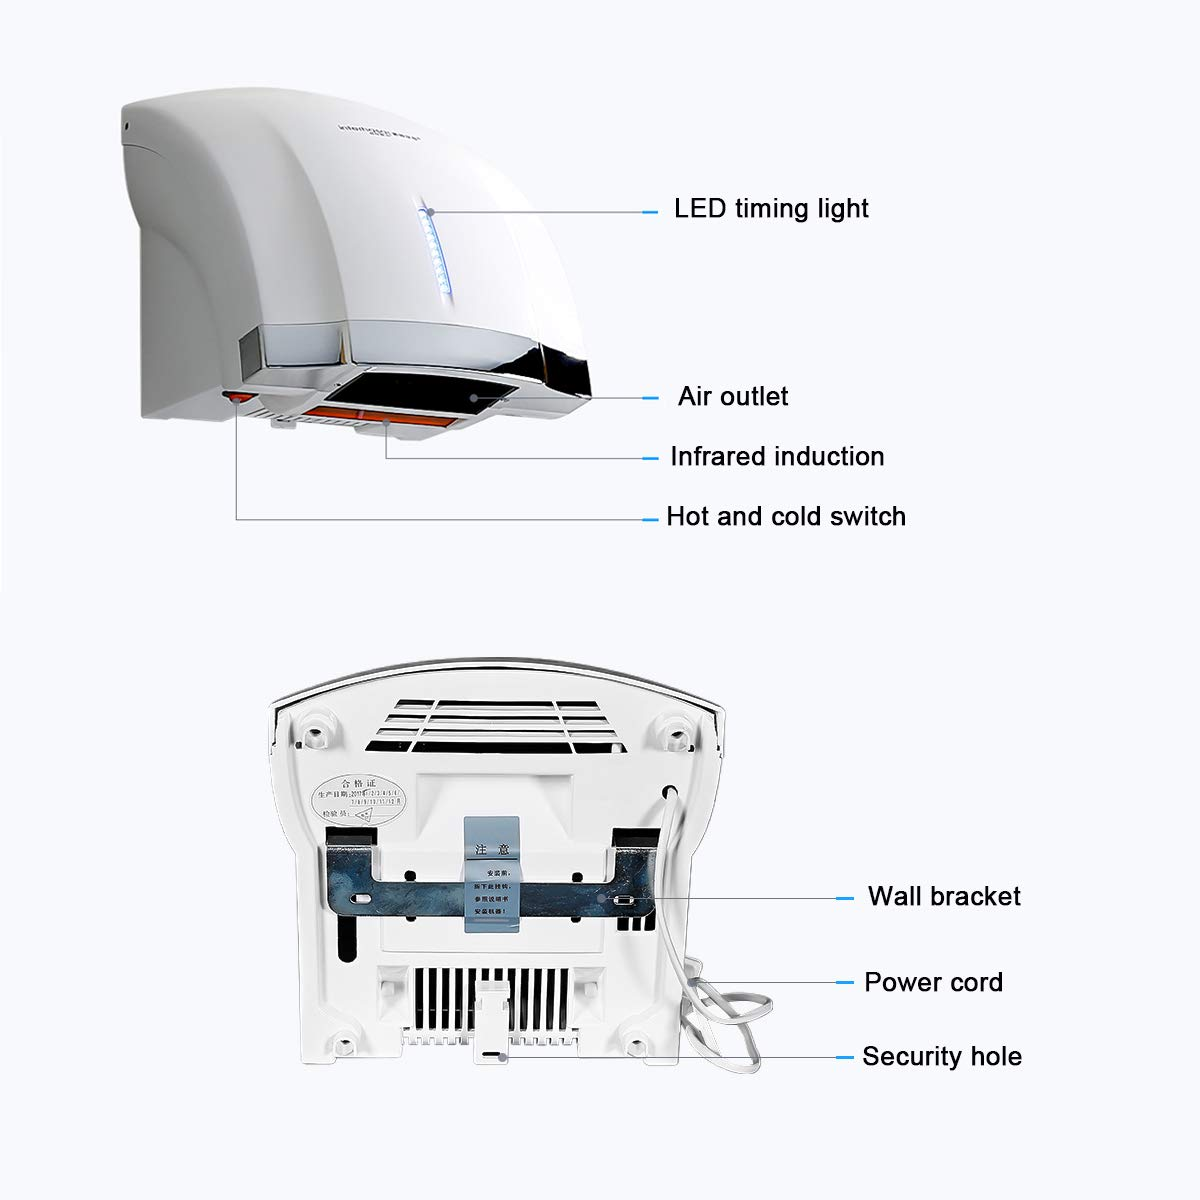 interhasa Easy to Install for Lavatory Bathroom.Low Noise 50dB,Intelligence Sensing System Hand Dryer Commercial,Powerful 1800W with Timing Progress Light Color:White Wall Mounted Hand Dryer